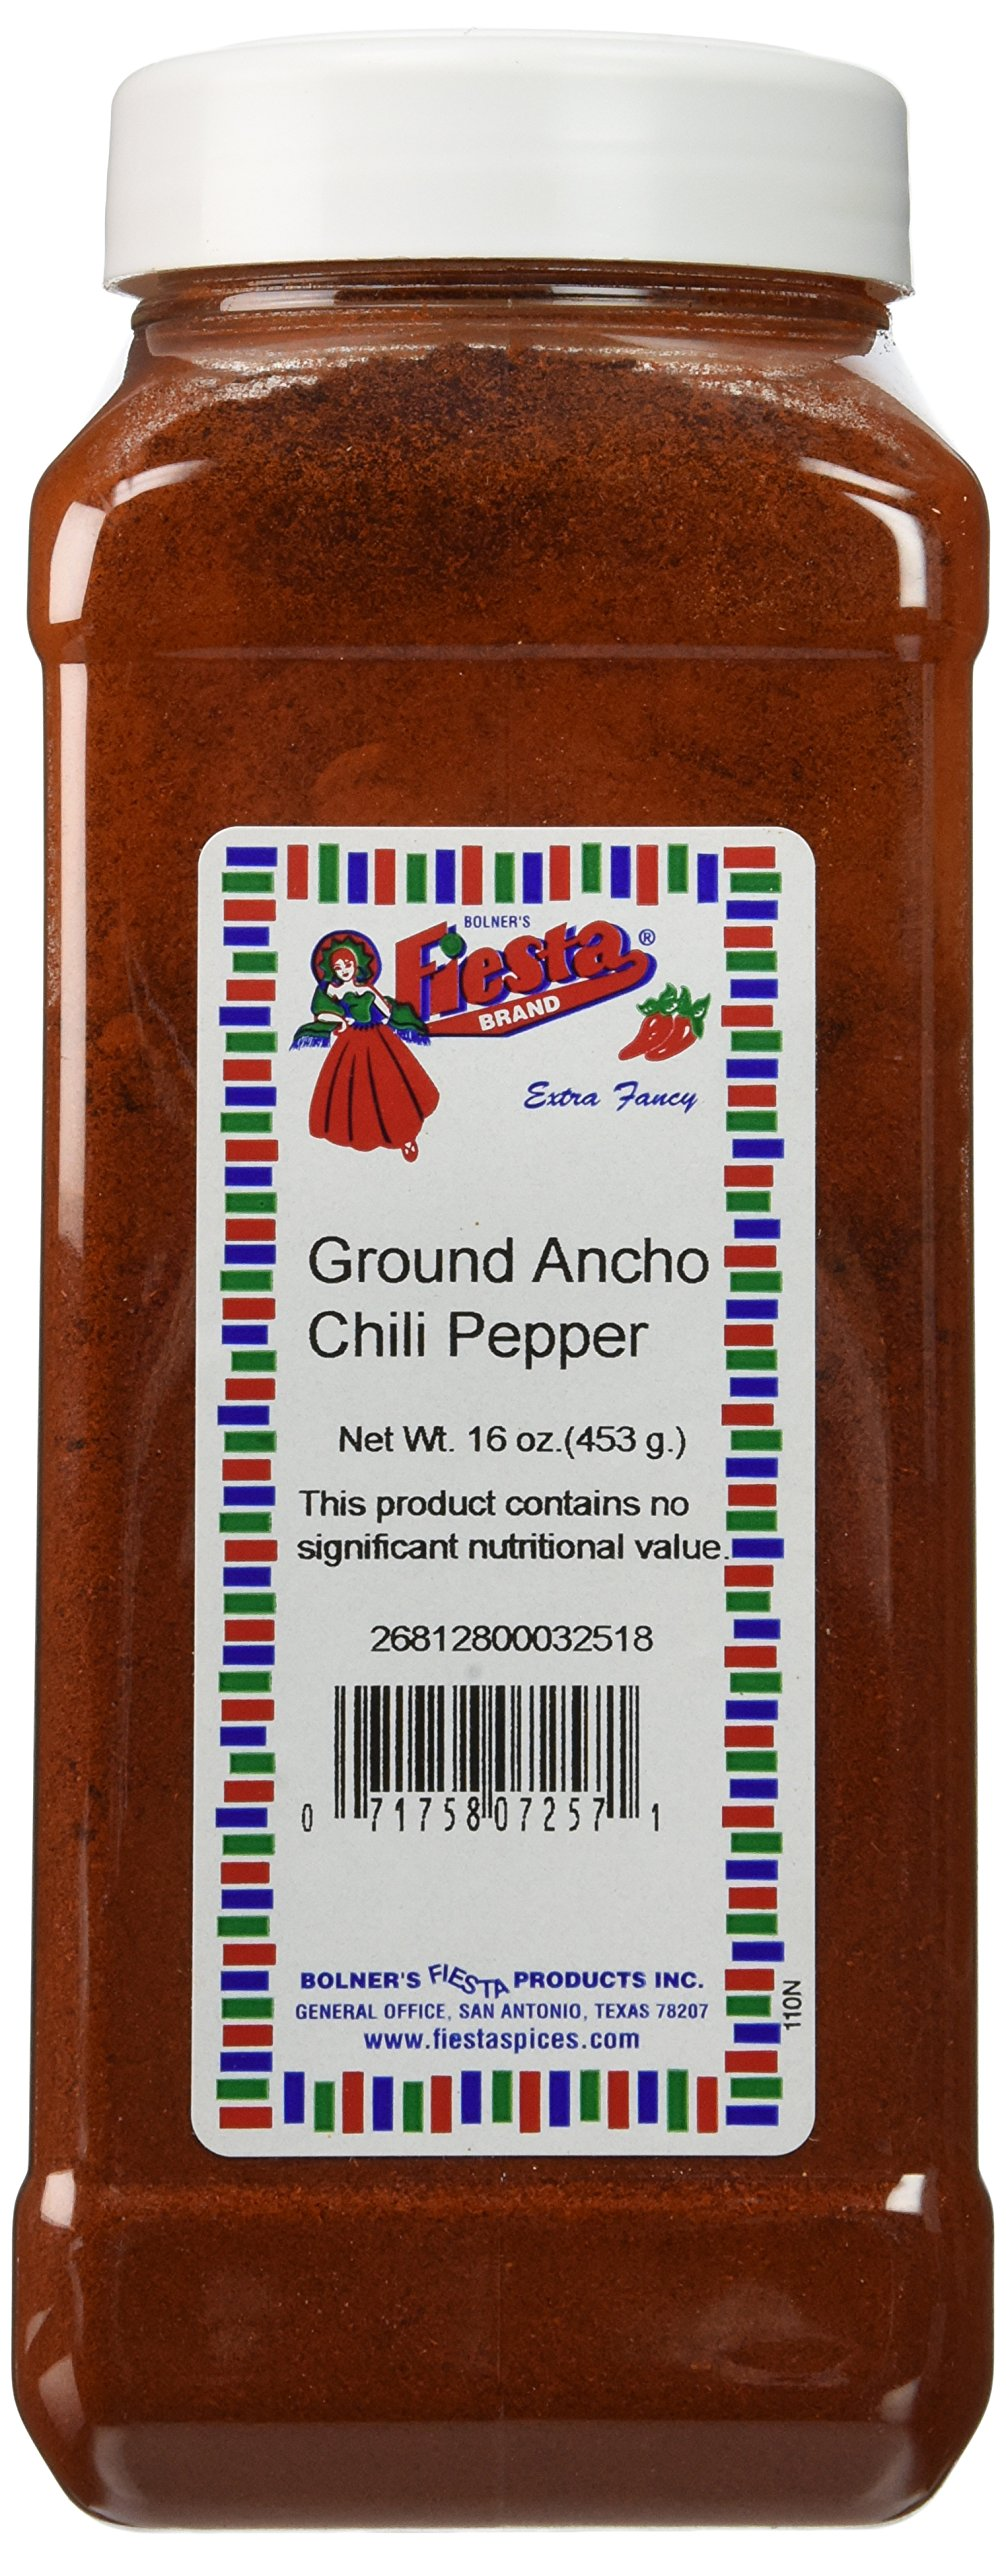 Bolner's Fiesta Extra Fancy Ground Ancho Chili Powder, 16 Oz.